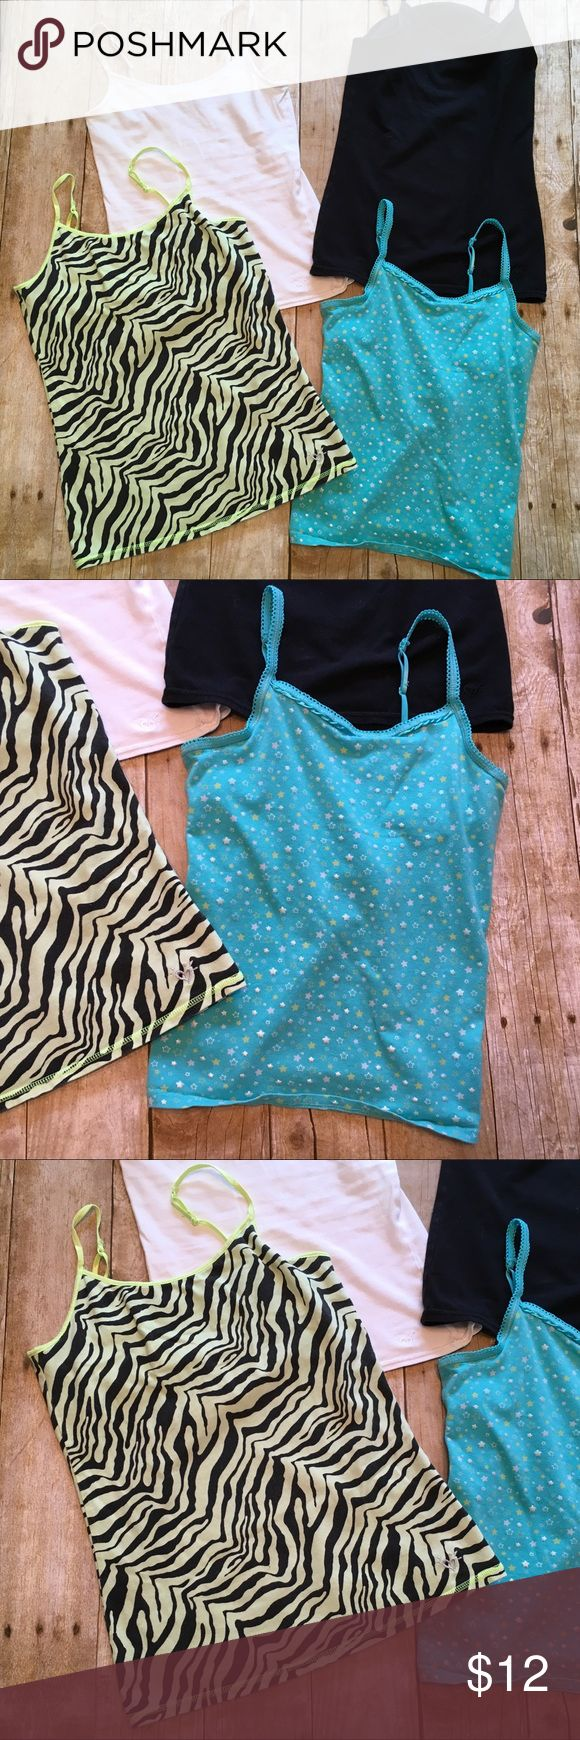 Bundle of four girls Camis ❤️Description: 4 girls camis , black white and blue cami size 10/12, neon yellow animal print cami size 14. All four have built in bra ❤️Condition: excellent used ❤️Brand: Black, white, animal print justice; blue, SO ❤️Size: 10/12, 14 ❤️Color(s): Black, white, blue, neon yellow ❤️Materials: 95% cotton/5% spandex ❤️Notes: 💕Bundle & save!💕 💕All reasonable offers are considered!💕 Justice Shirts & Tops Camisoles